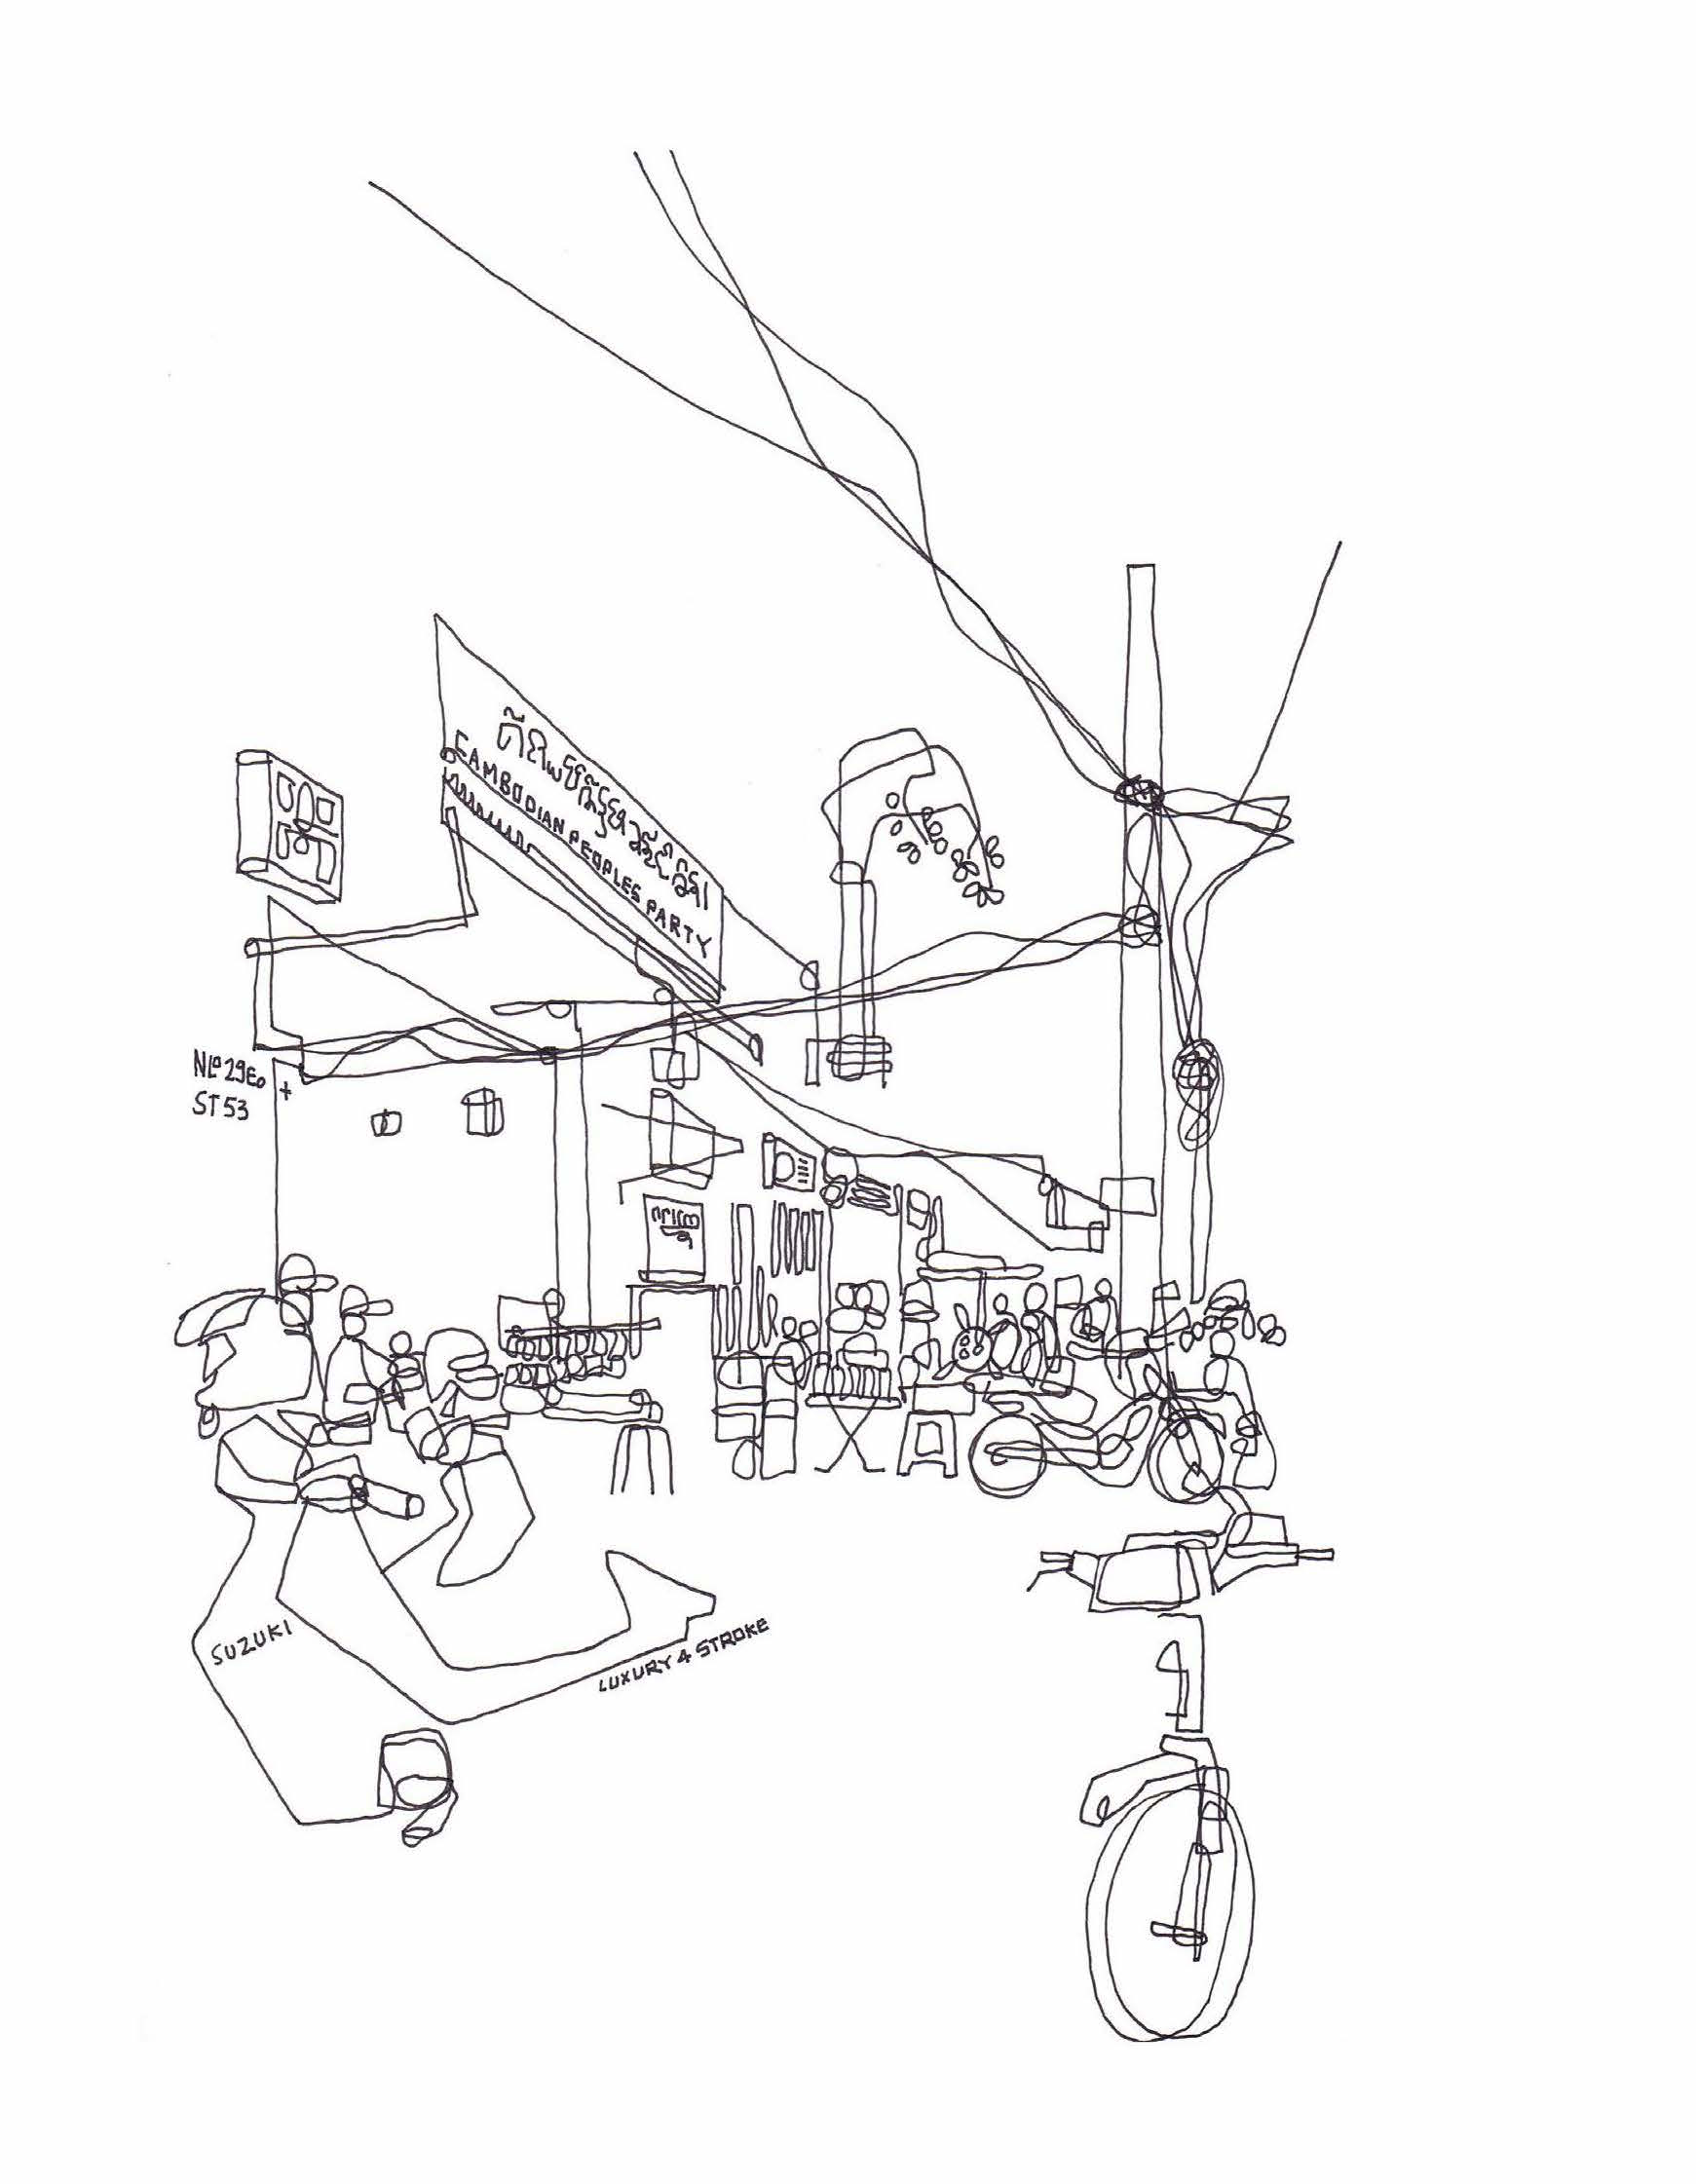 cambodia sketches 2015_Page_05.jpg